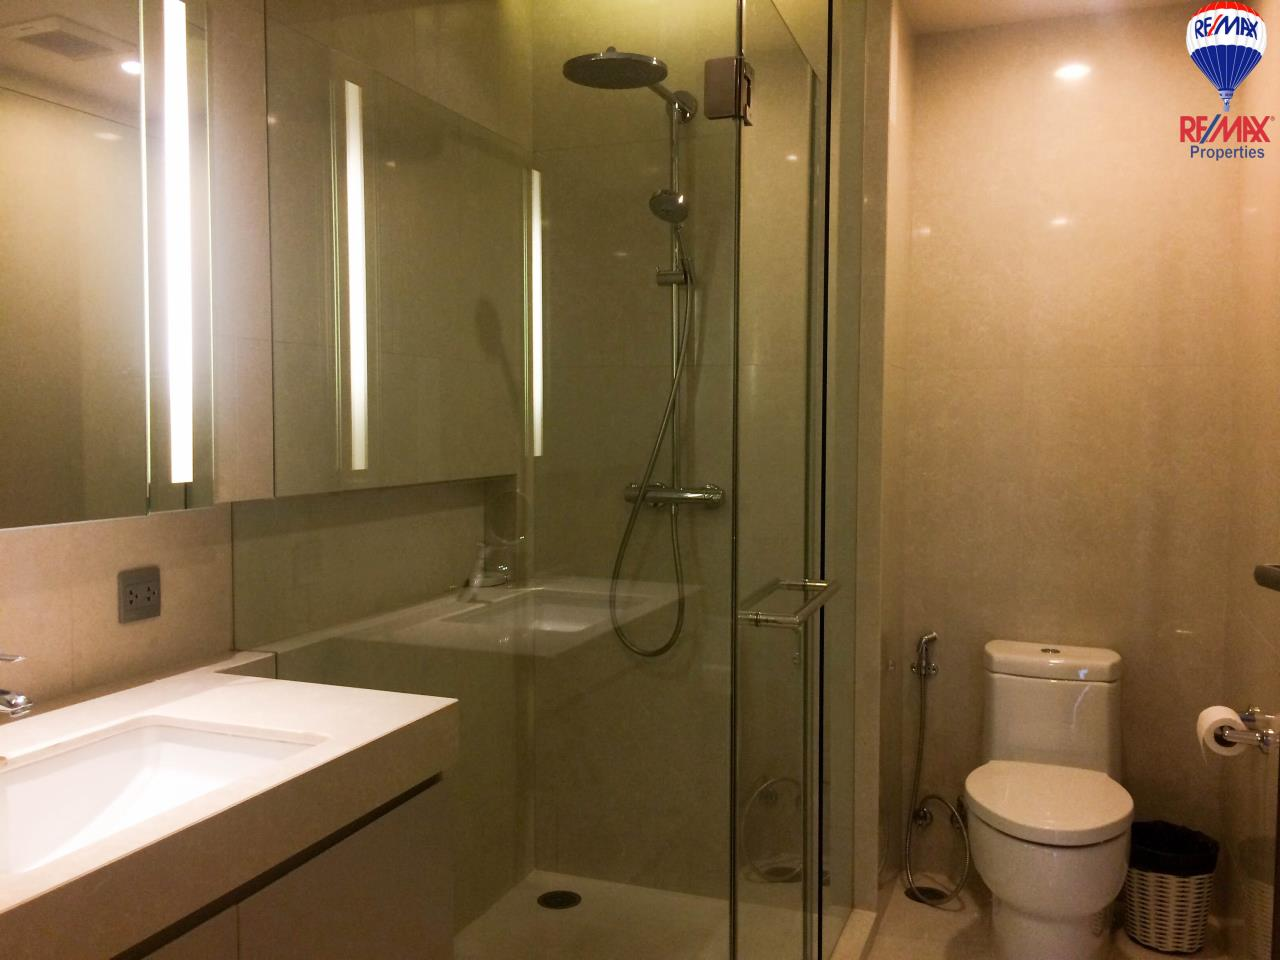 RE/MAX Properties Agency's 2 Bedrooms 86 Sq.M. for rent in Quattro by Sansiri 19